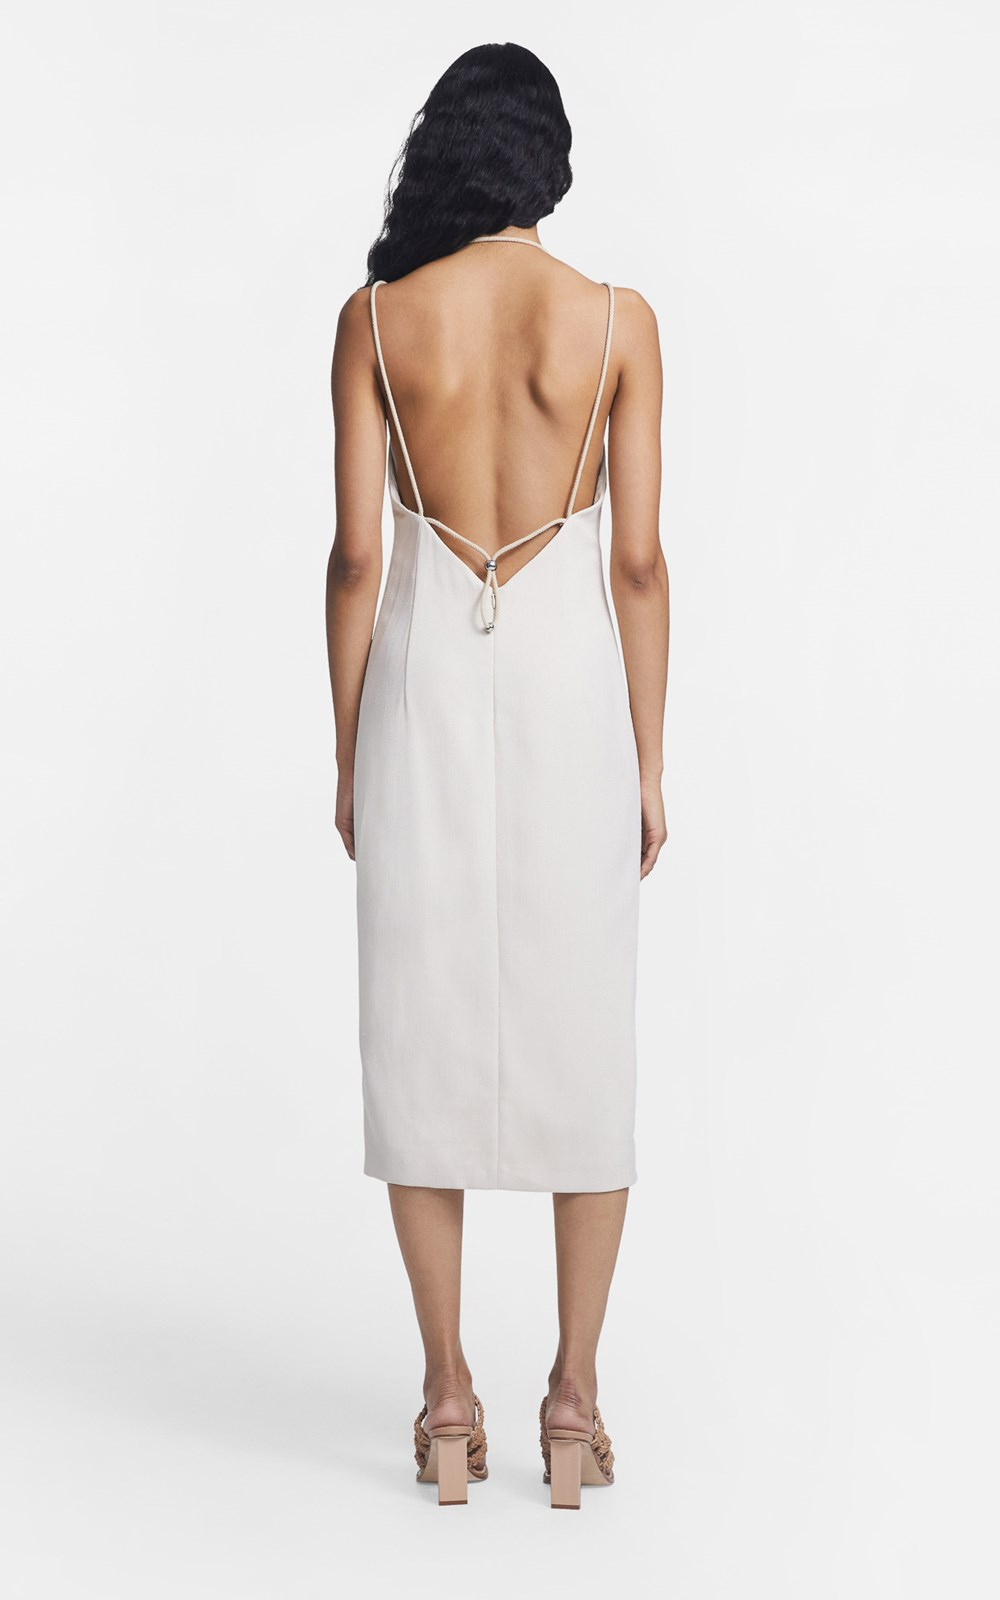 Dresses  | MACRAME SLIP DRESS